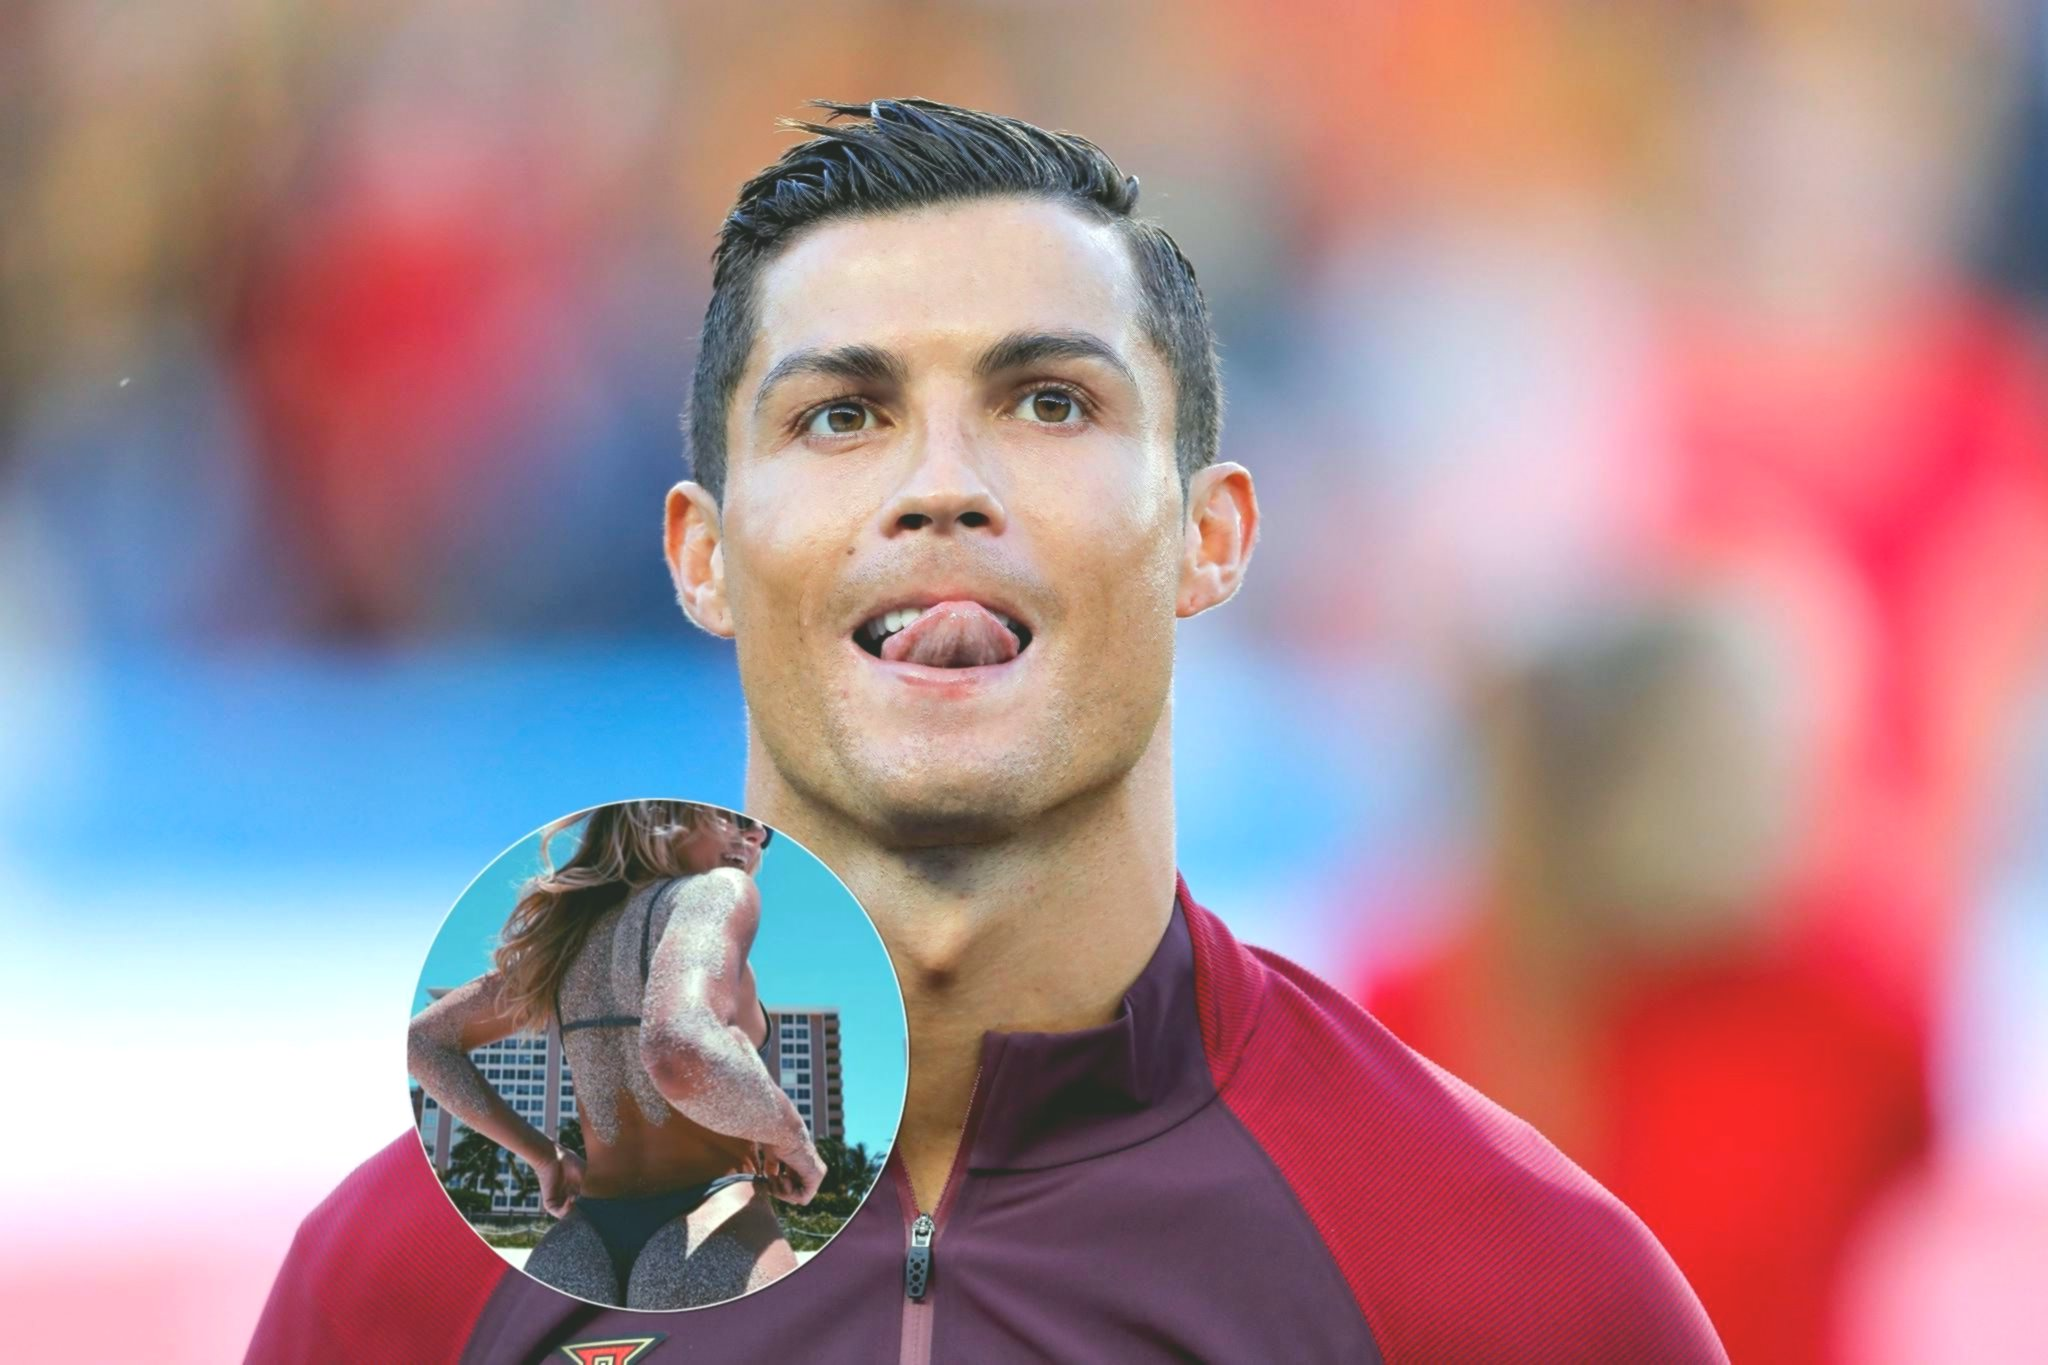 lovely cr7 hairstyle picture-luxury cr7 hairstyle decor